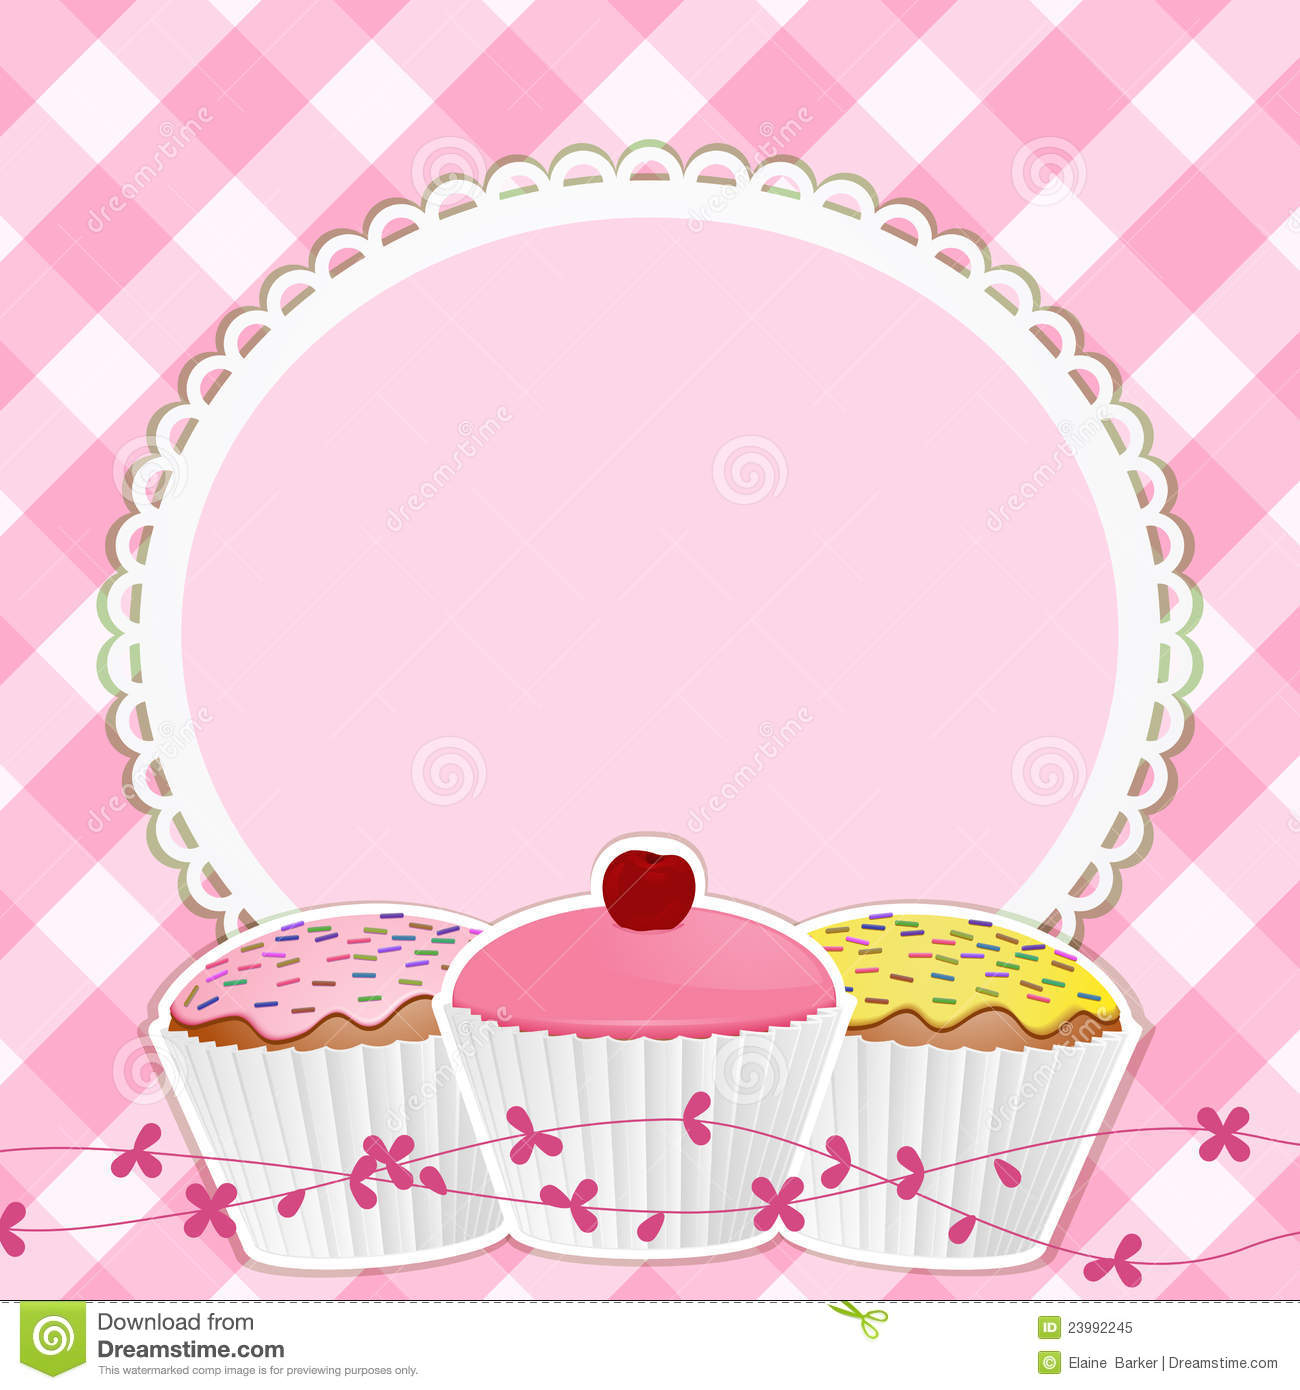 Cupcakes And Border On Pink Gingham Royalty Free Stock Photo - Image ...